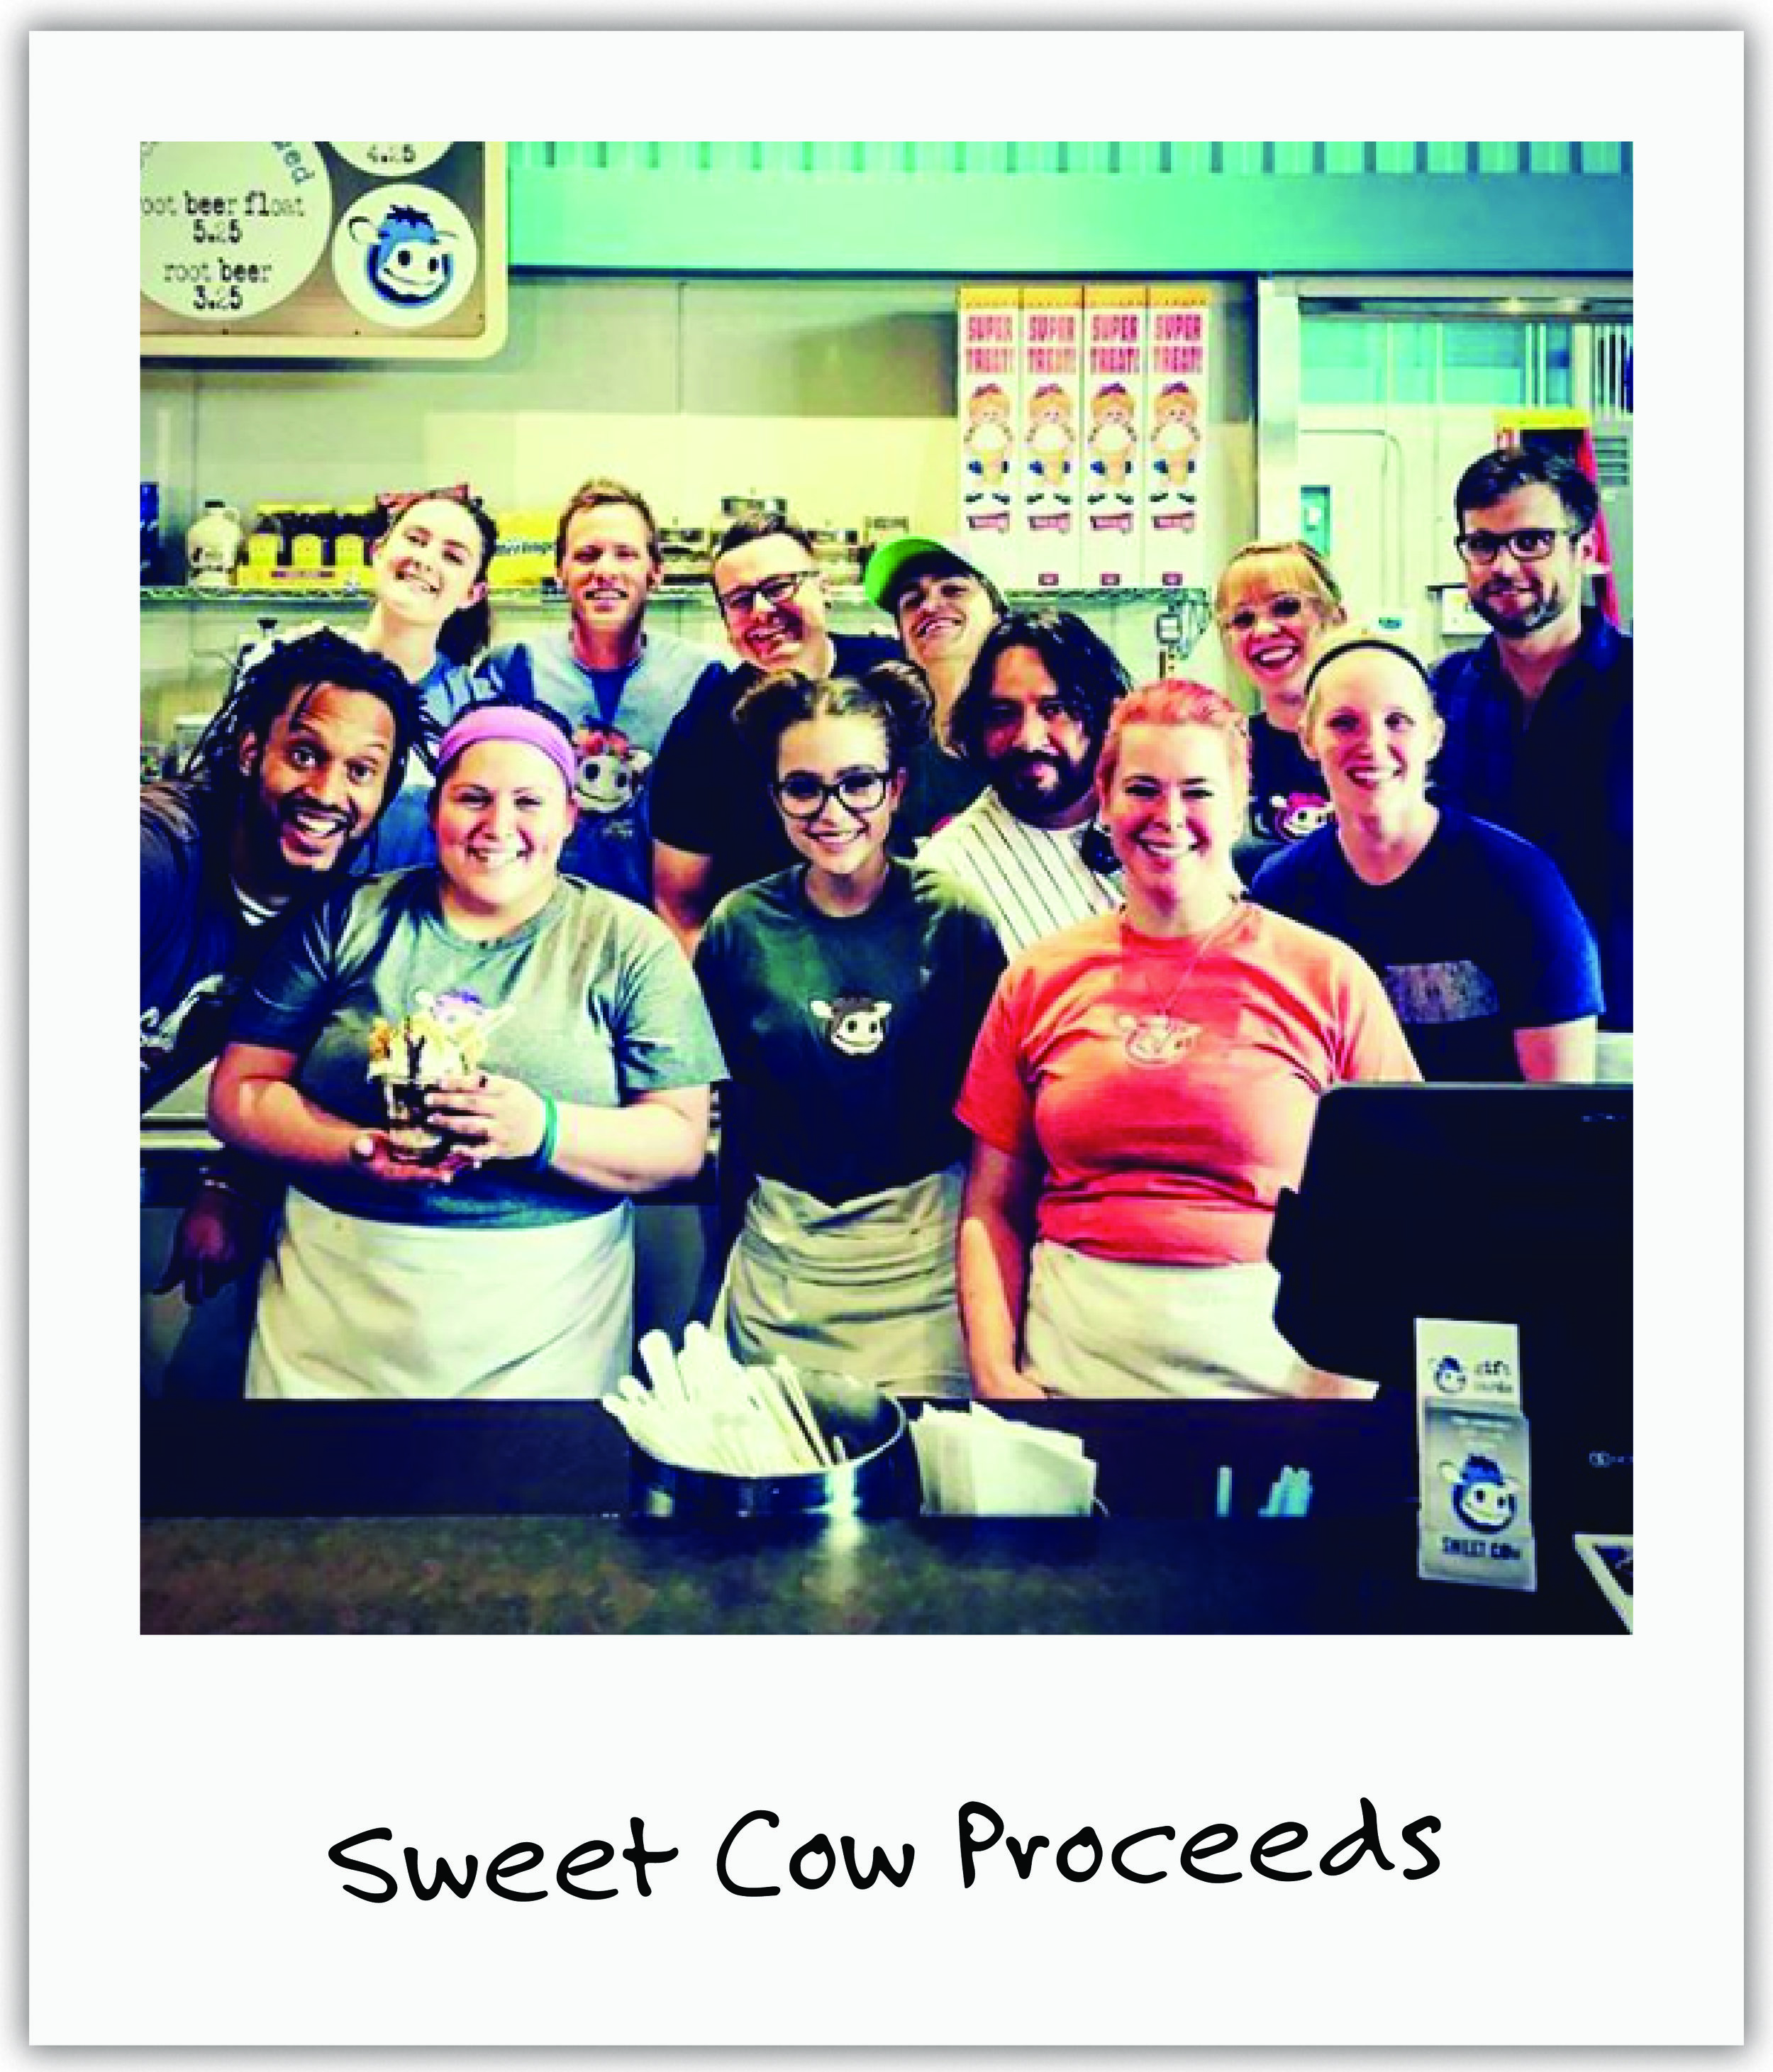 Local Sweet Cow ice cream chain blasted Mila's story out to their followers and gave proceeds from tables at a popular festival.